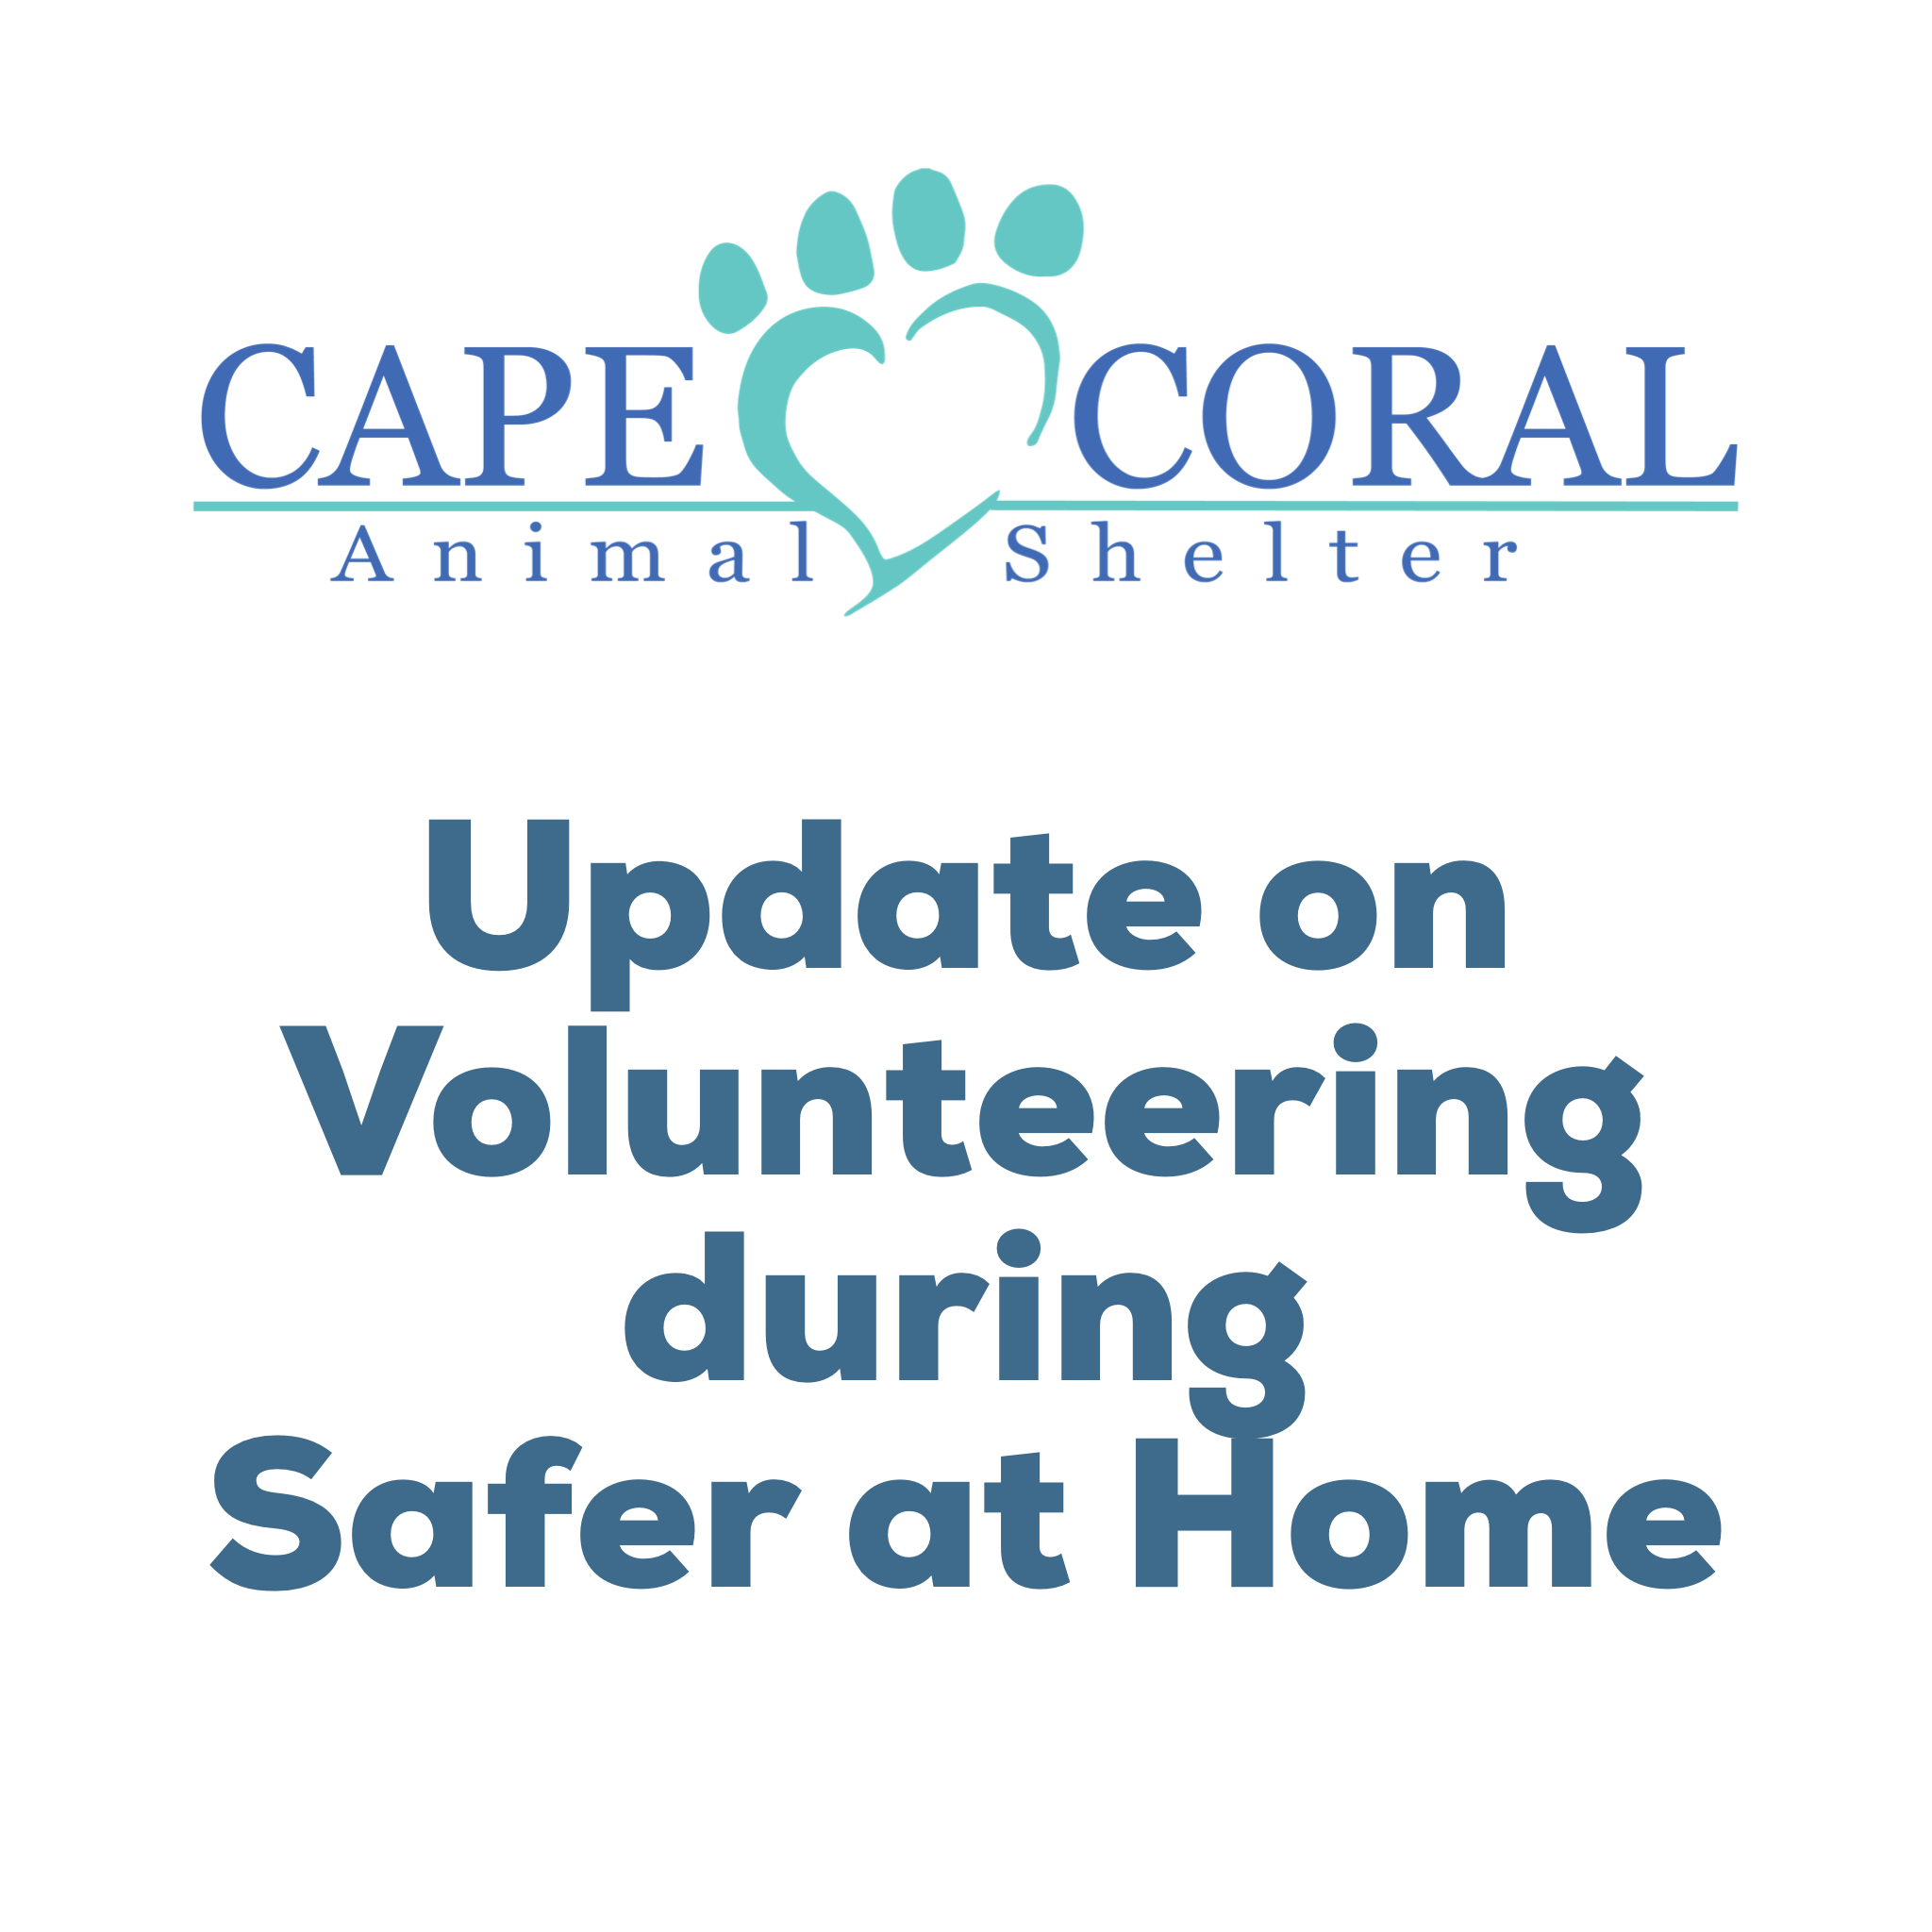 Volunteering during Safer at Home